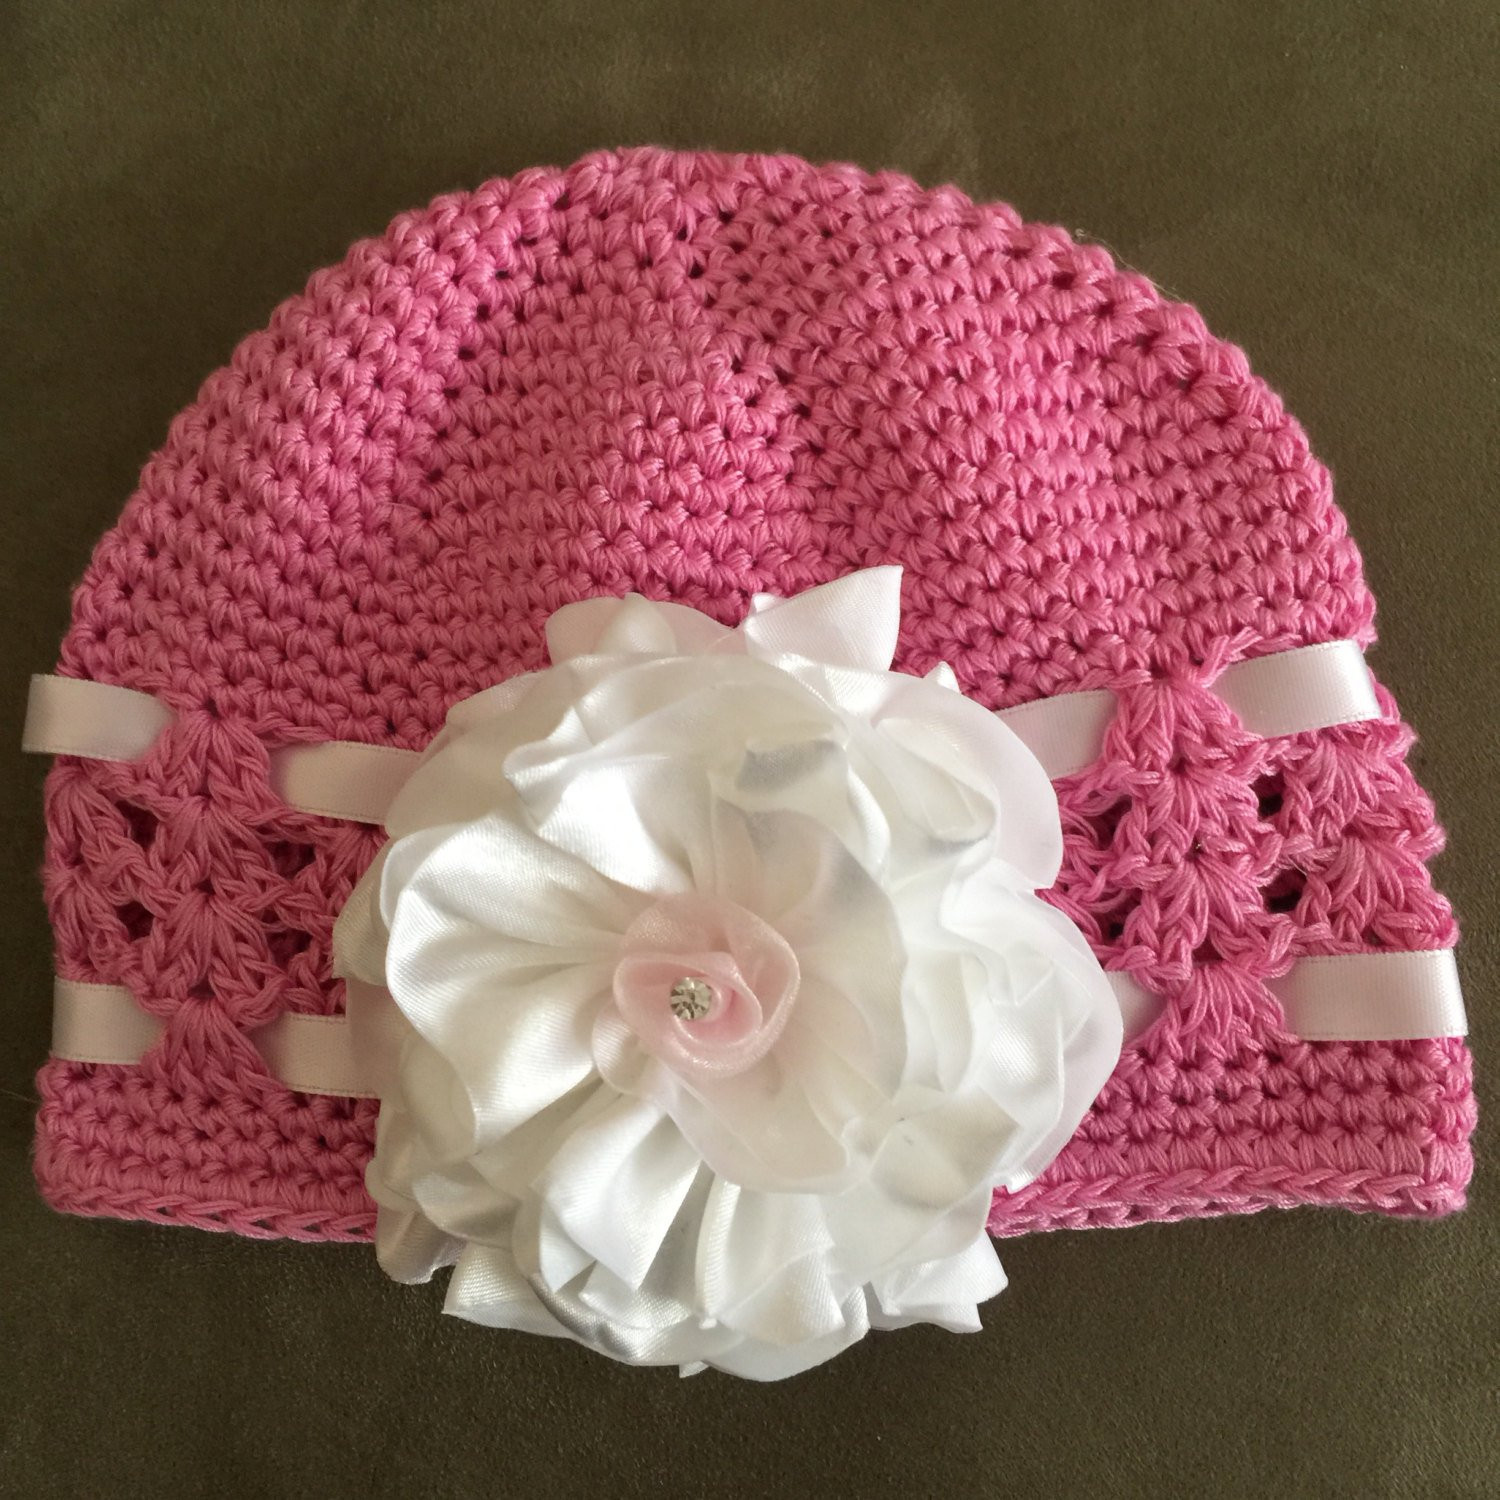 Best Of Knit Hospital Hat Shoot Baby Hat Baby Girl Hospital Knitting Baby Hats for Hospitals Of Beautiful 50 Pics Knitting Baby Hats for Hospitals